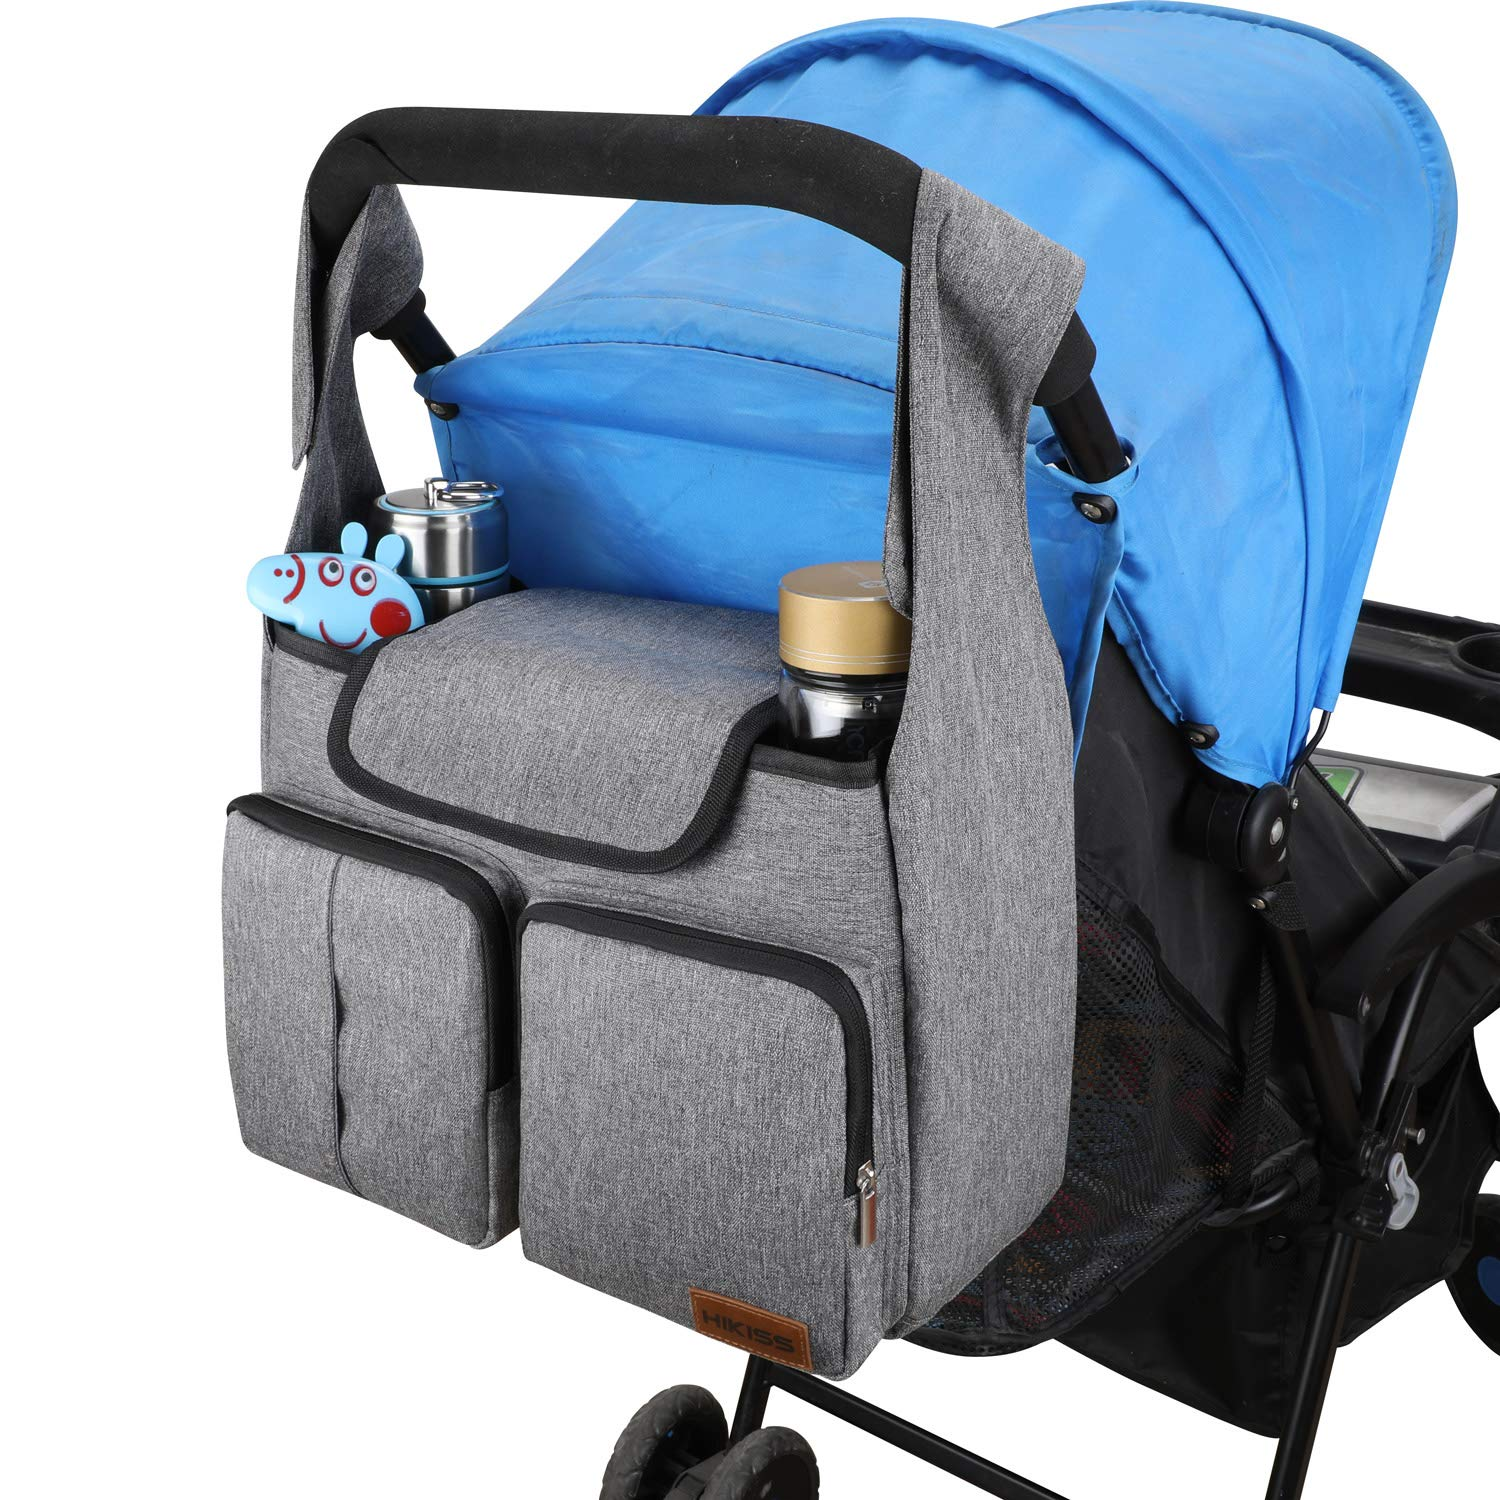 HIKISS Baby Stroller Organizer with Cup Holders-Light Gray